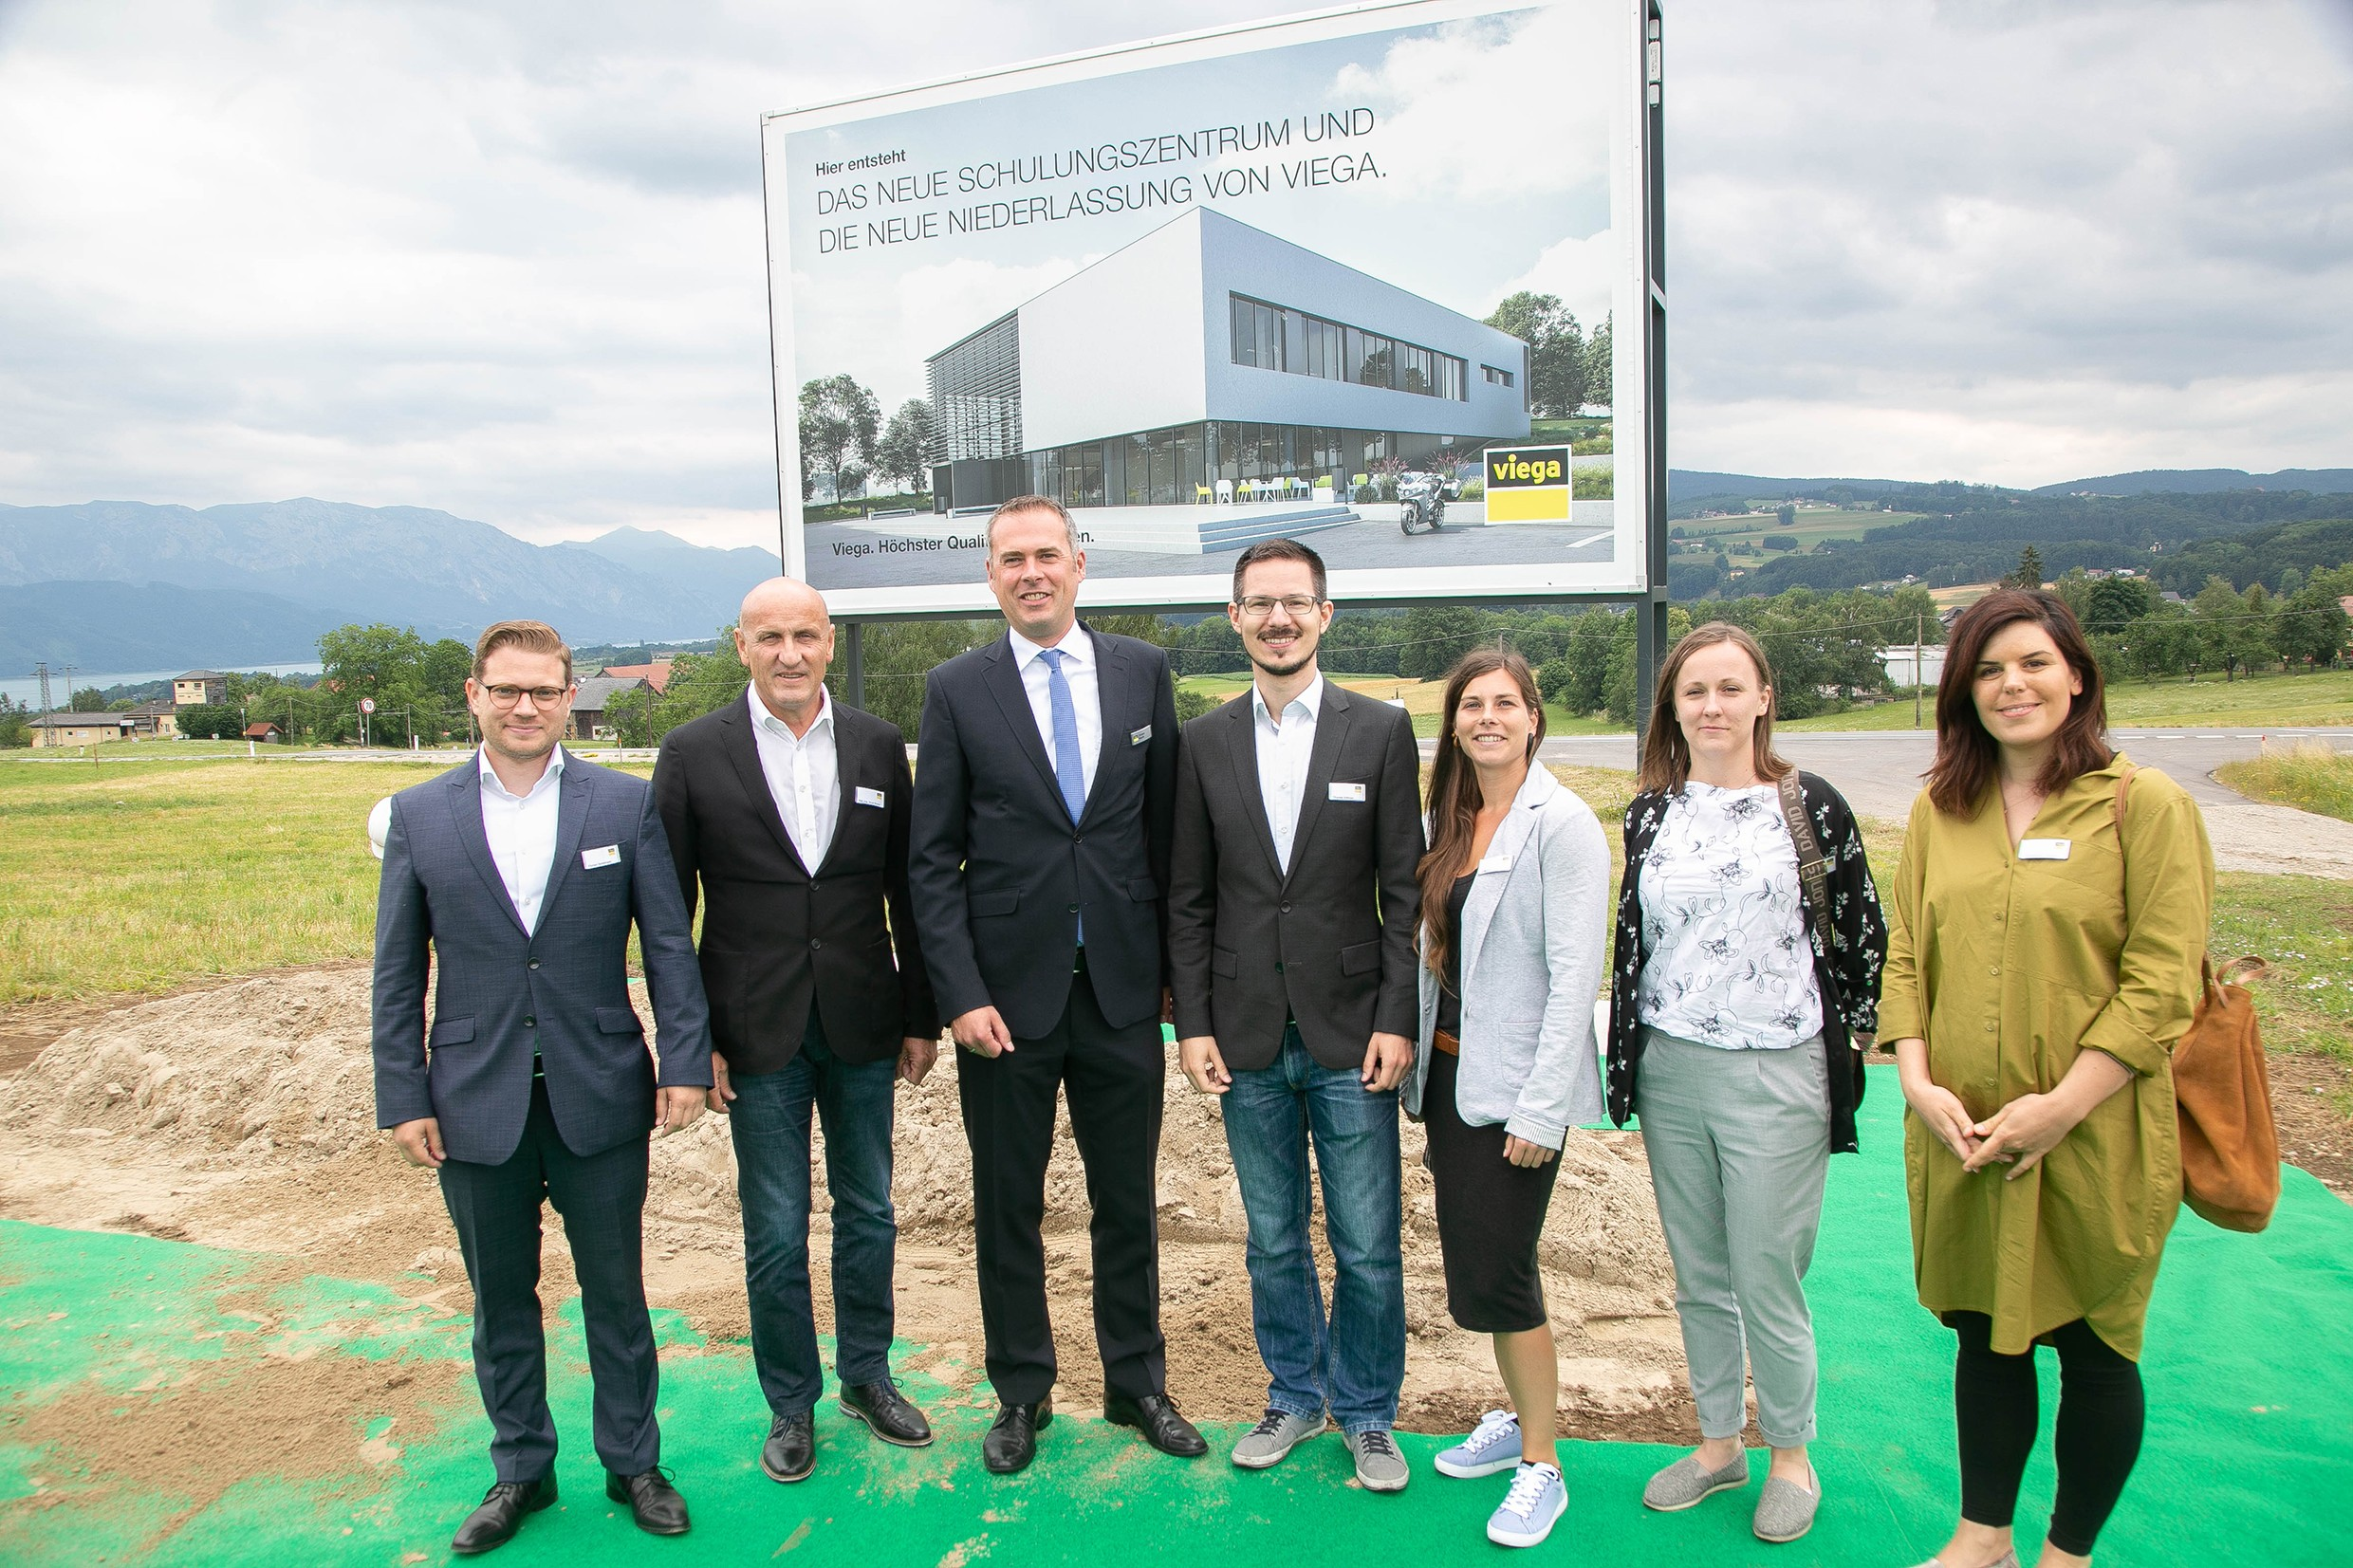 from left: Florian Sedelmaier, Horst Reiner (ATP), Christian Rüsche (Viega GmbH), Thomas Edlinger (ATP), Monika Ecker (ATP sustain), Lucia Kostrubová (ATP), and Katharina Thullner (ATP sustain) enjoy the groundbreaking ceremony.<br><span class='image_copyright'>Viega</span><br>